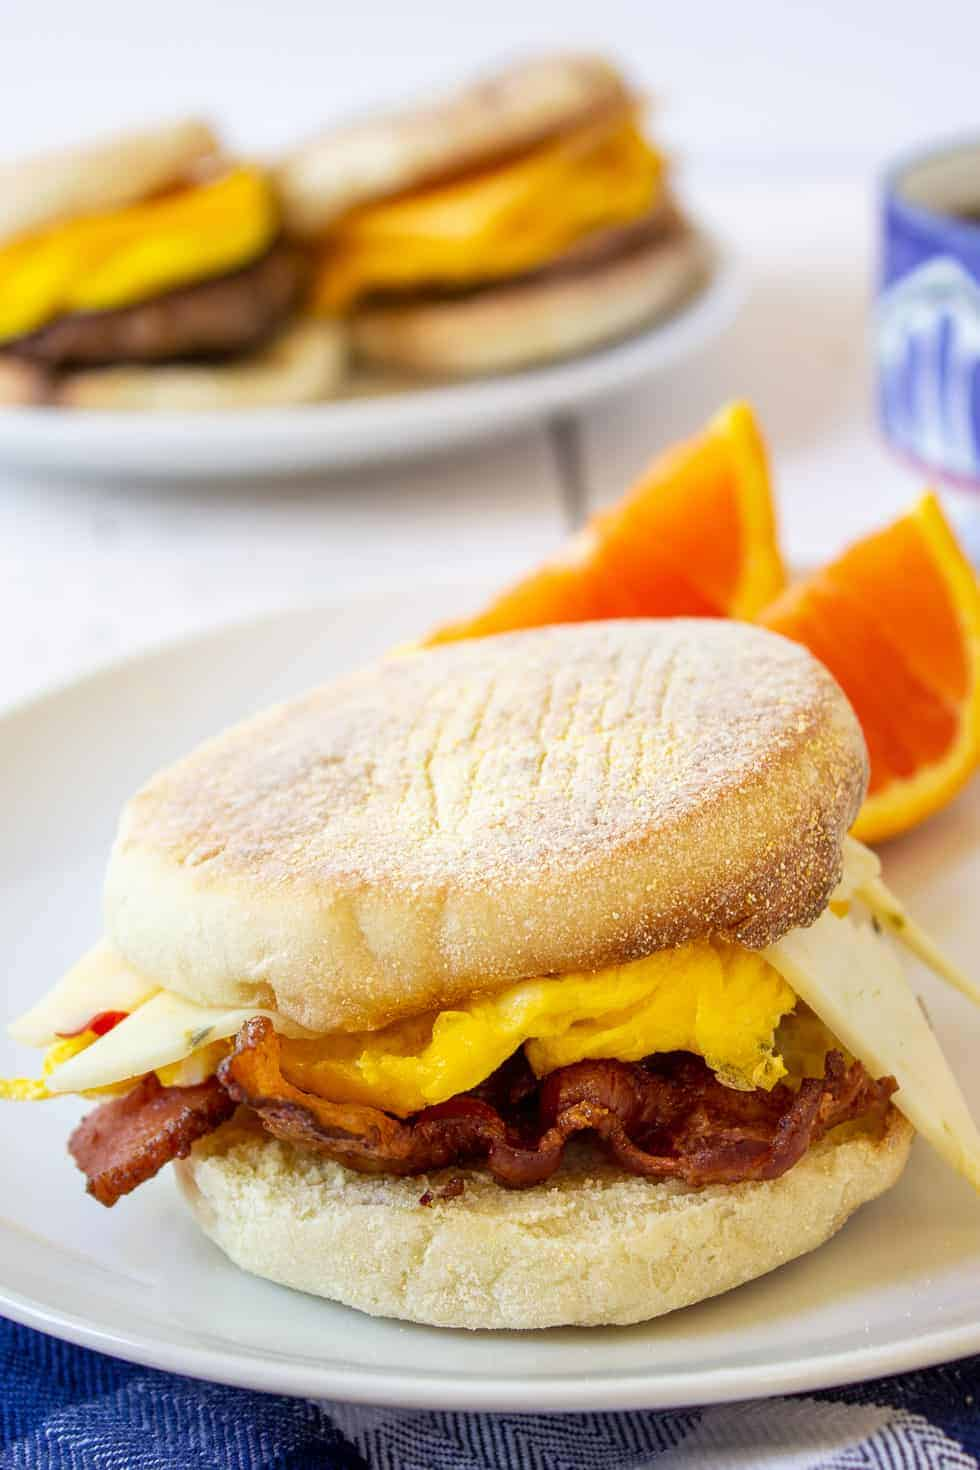 A sandwich made with English muffins, egg, bacon and cheese.